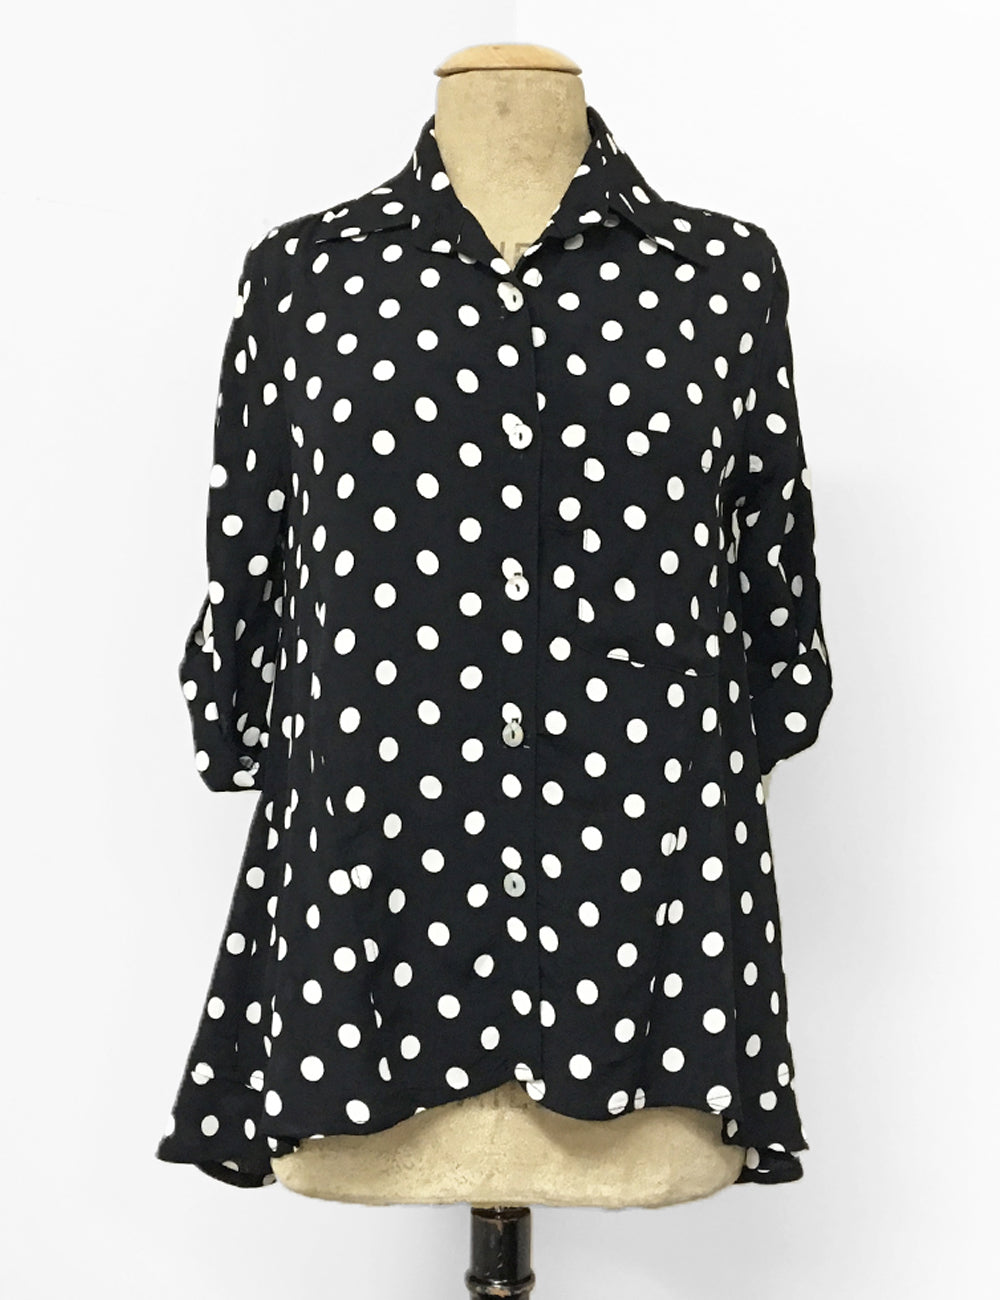 Black & White Big Dot Button Up Collared Hi-Low Blouse - FINAL SALE